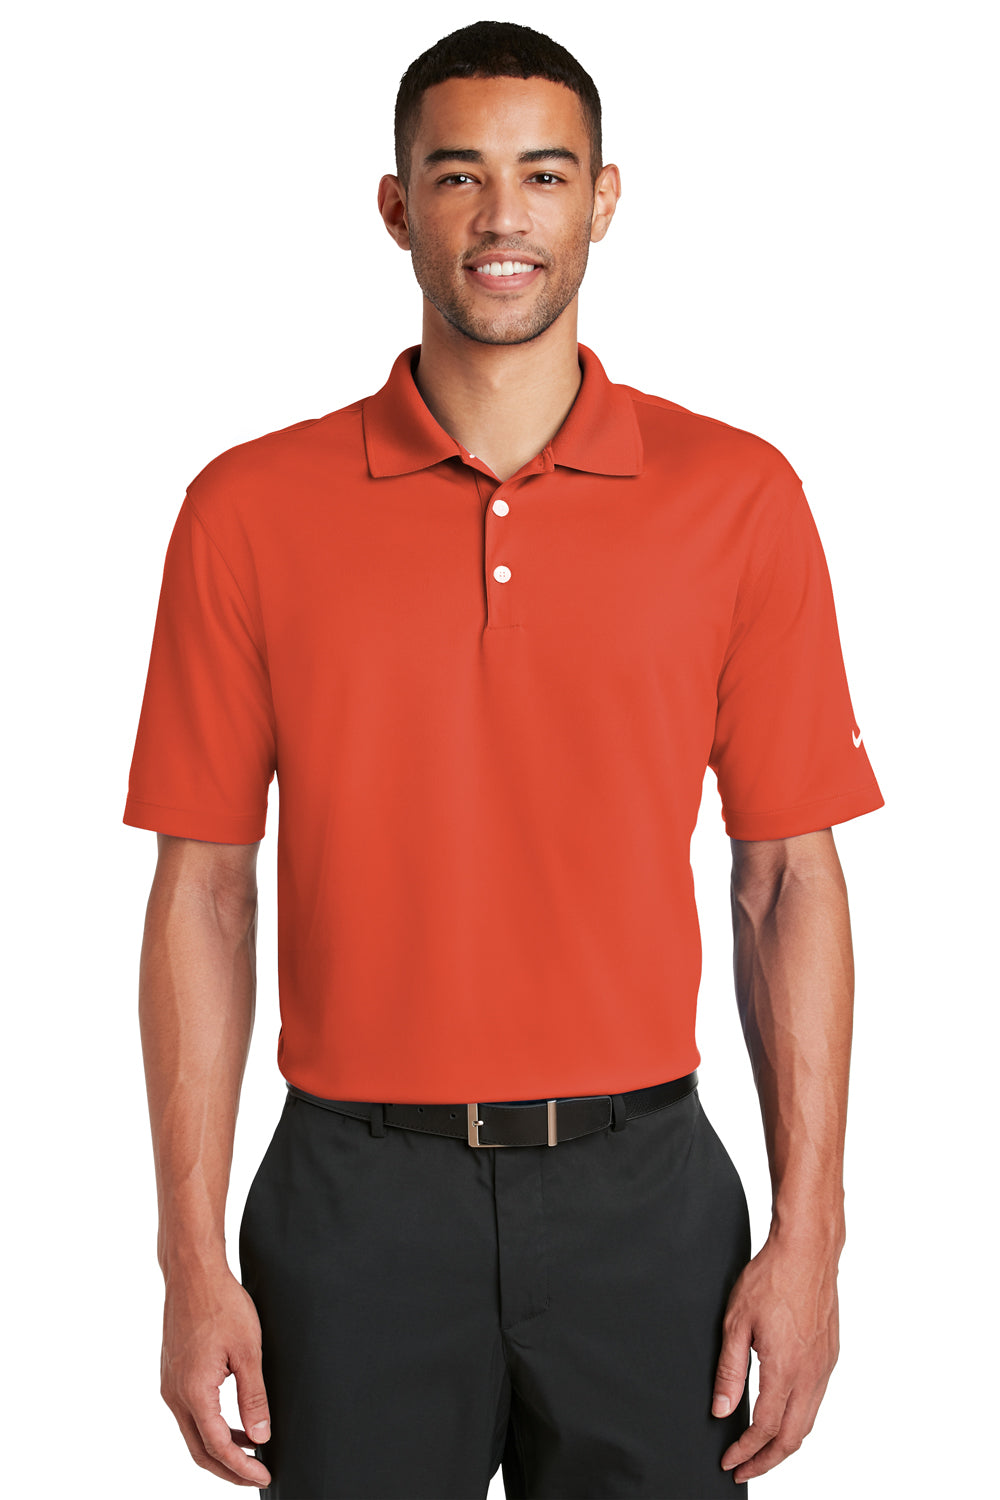 Nike Mens Dri-Fit Moisture Wicking Short Sleeve Polo Shirt - Team Orange